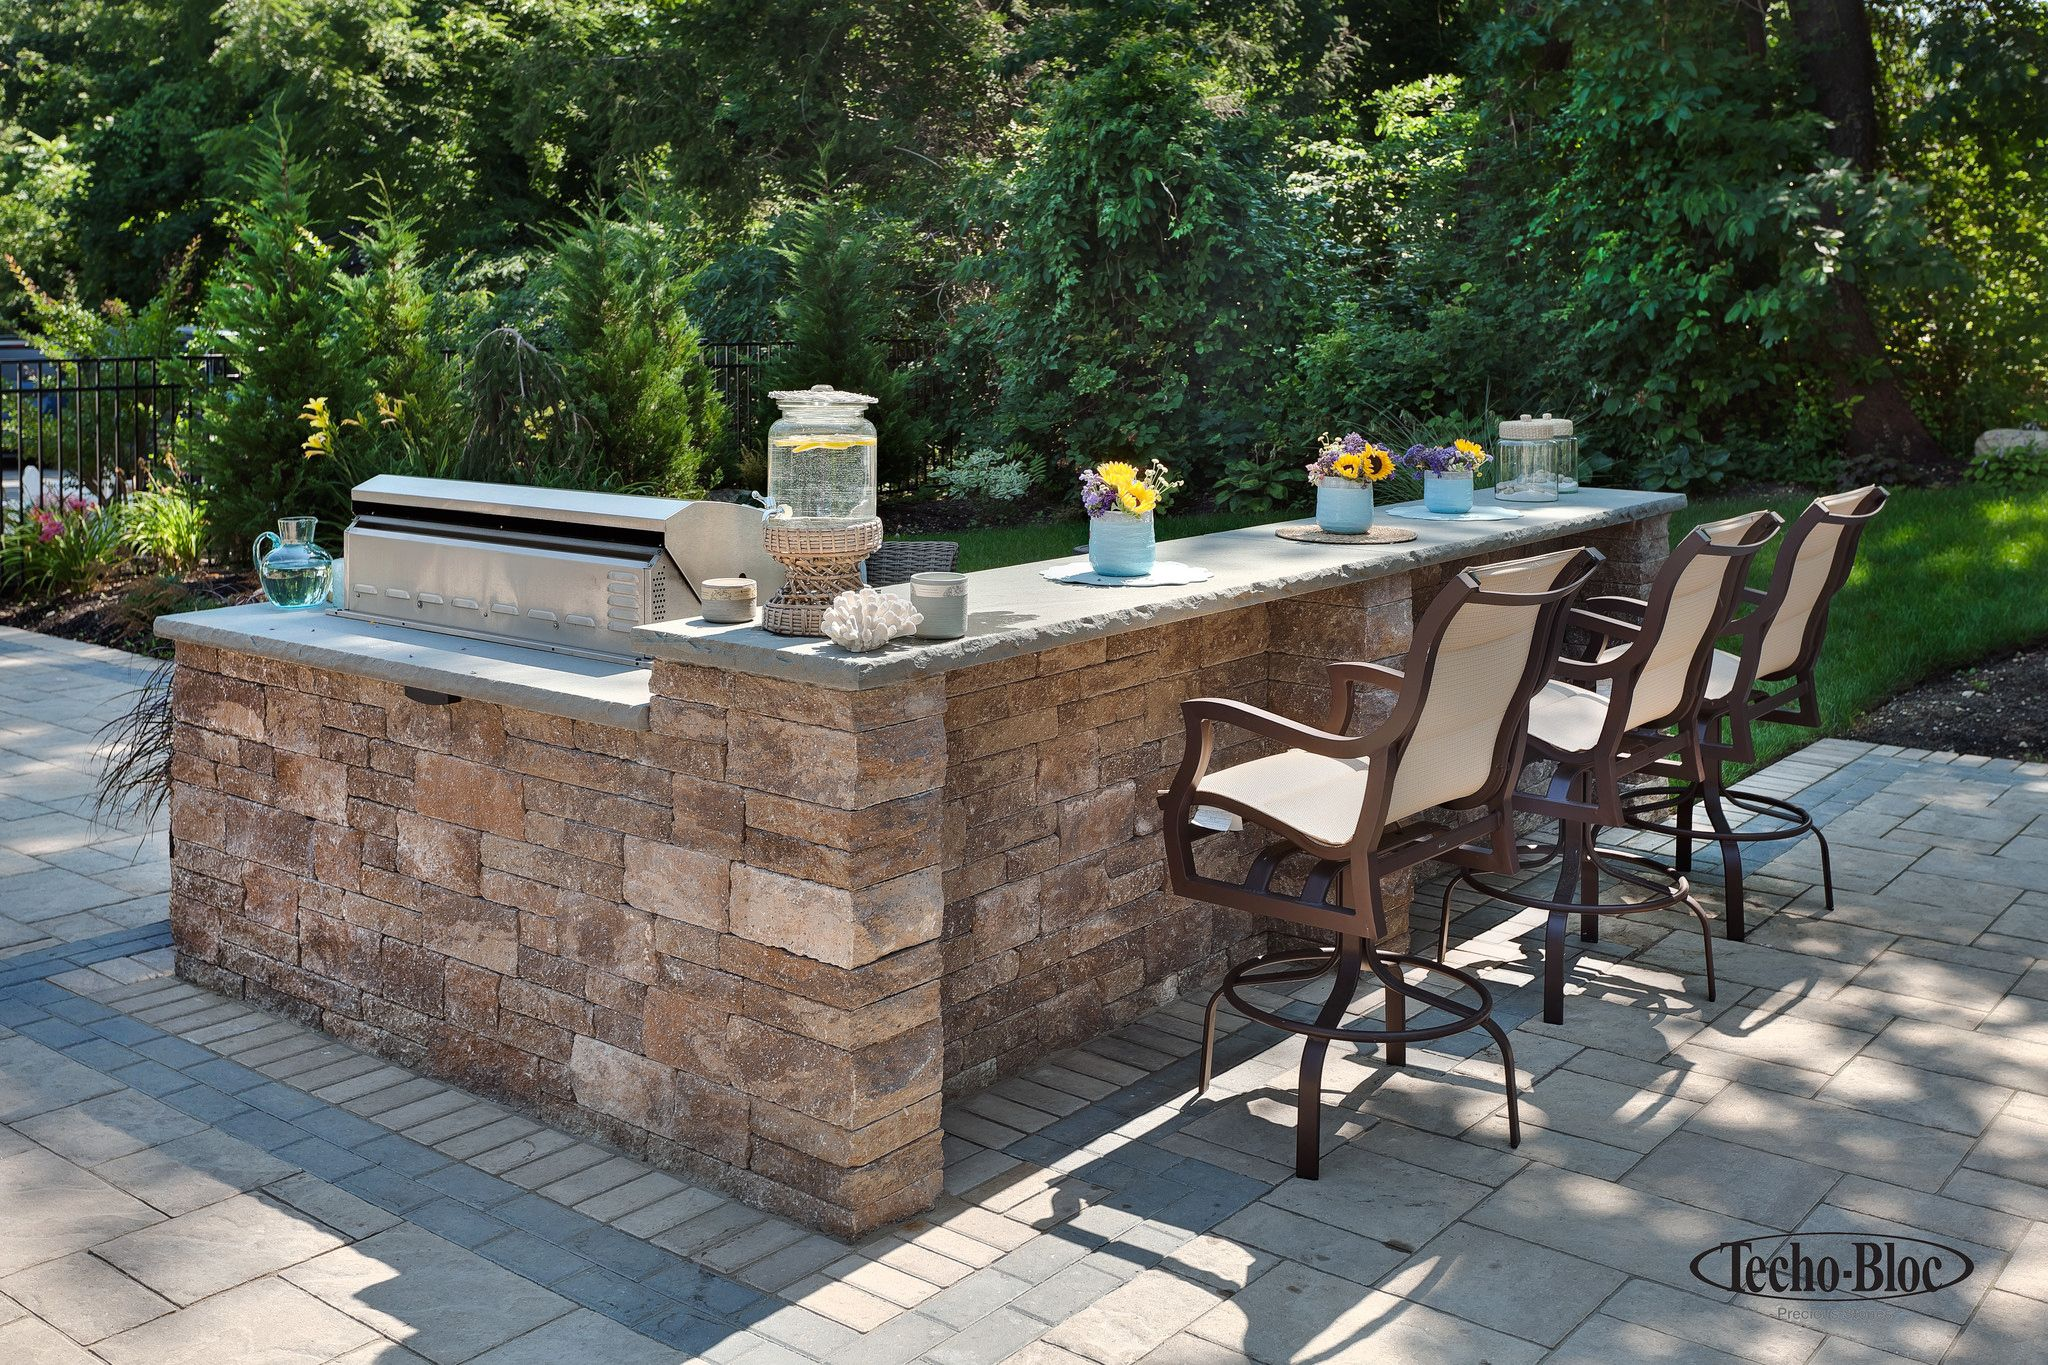 Outdoor Grill Island with Bar  Outdoor kitchen bars, Backyard